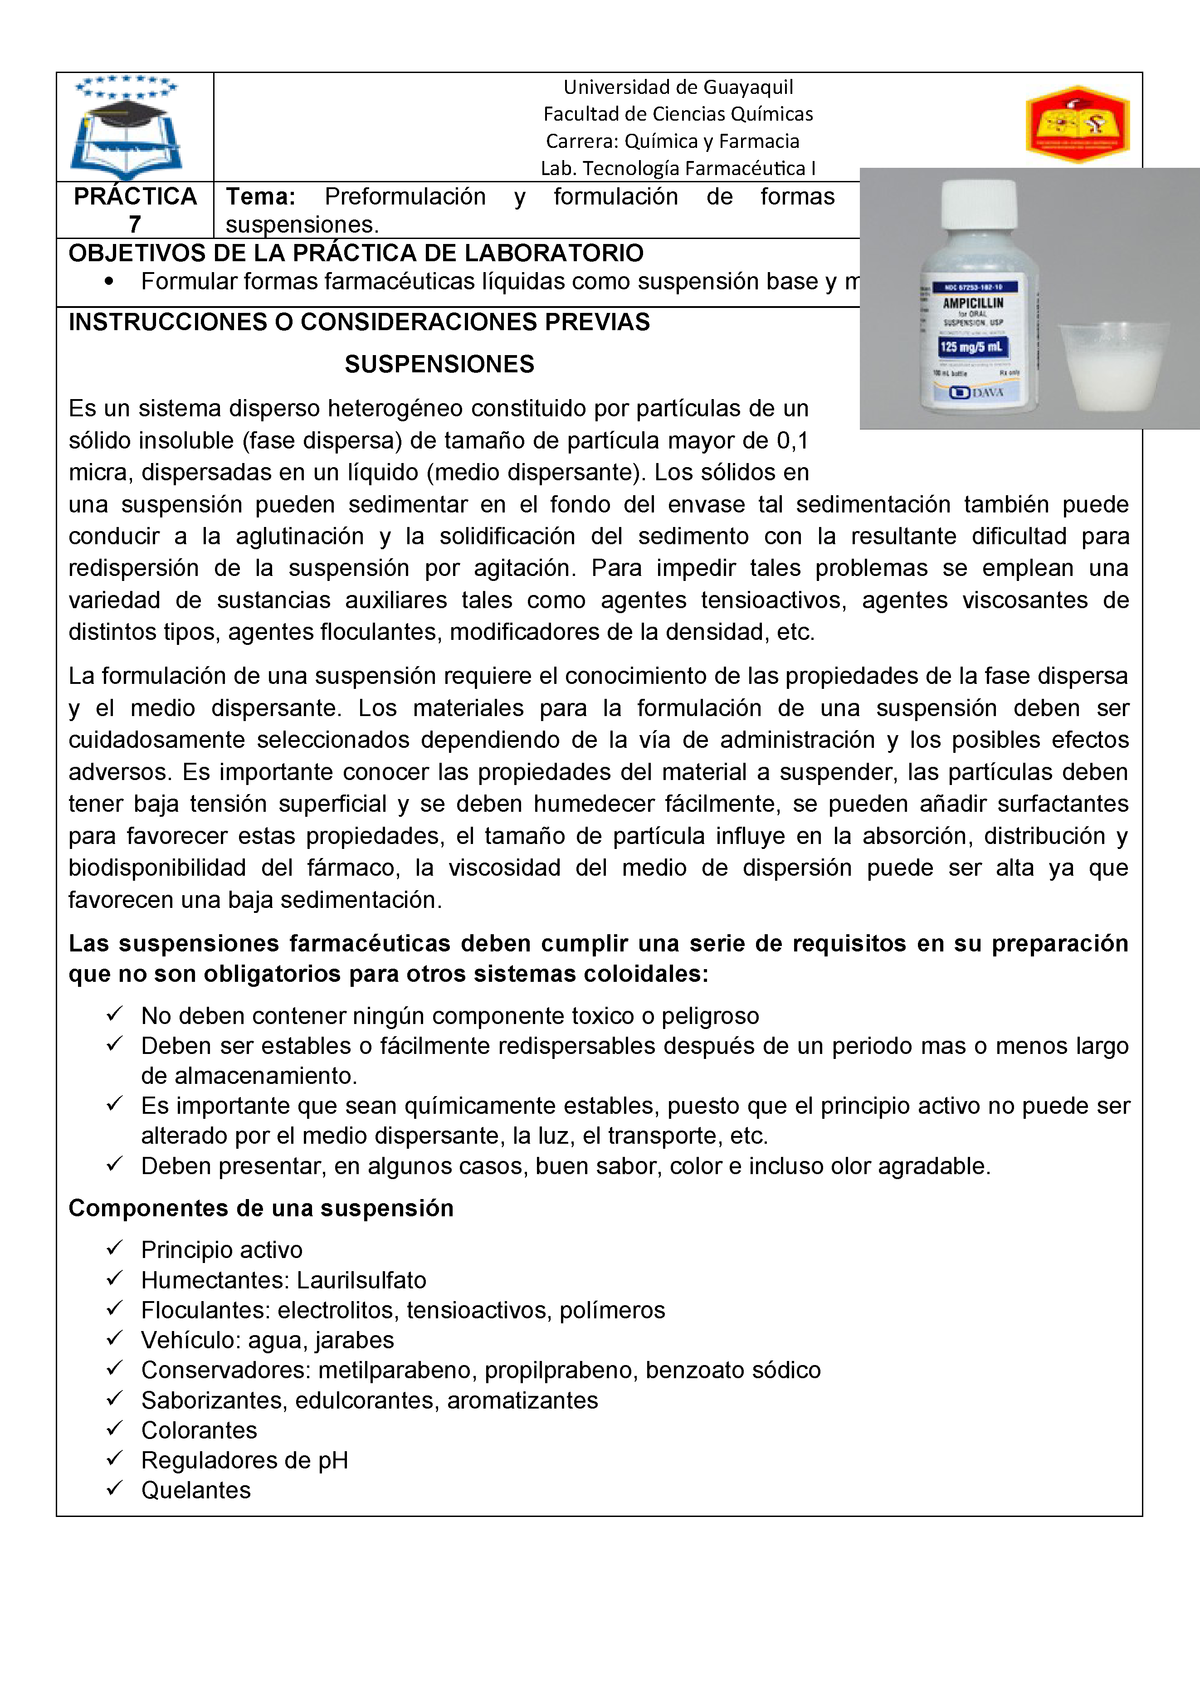 Suspensiones farmaceuticas conclusiones